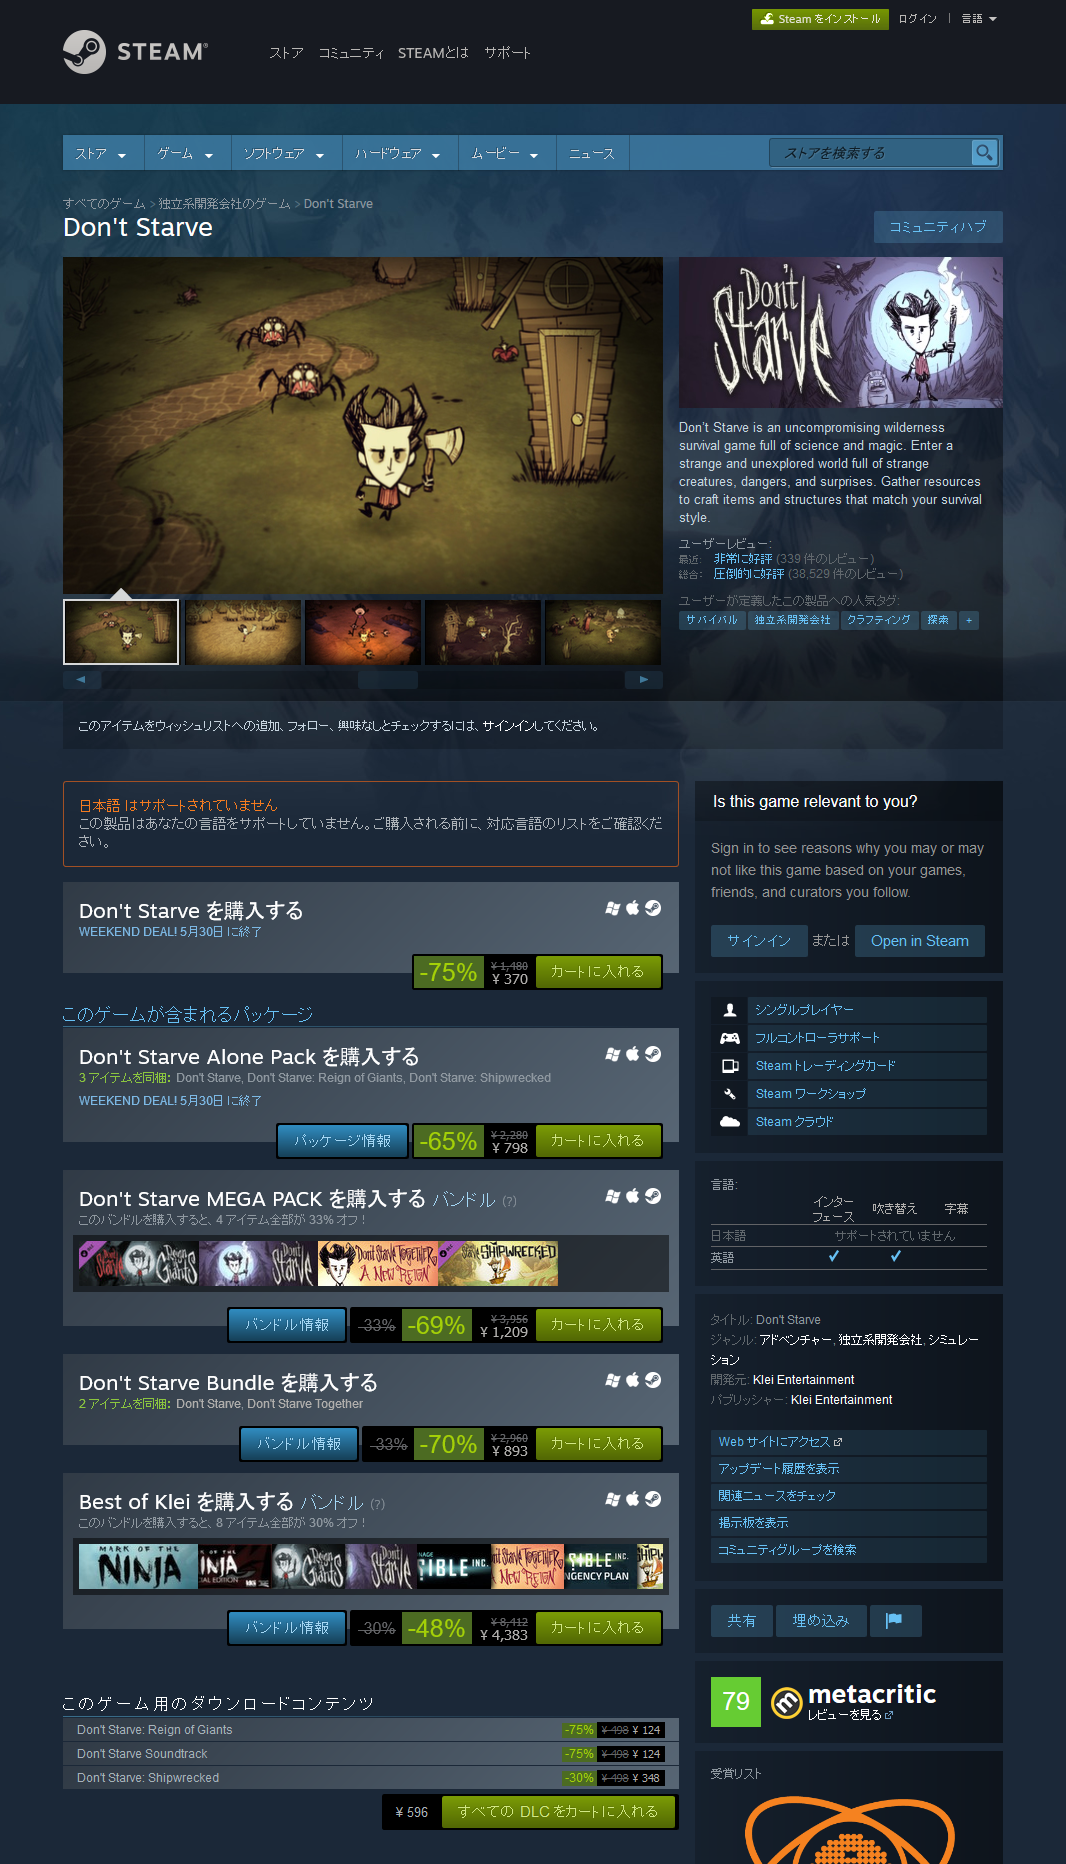 "Don't Starve(<a href=""http://store.steampowered.com/app/219740/Dont_Starve/"">Steamへのリンク</a>)"